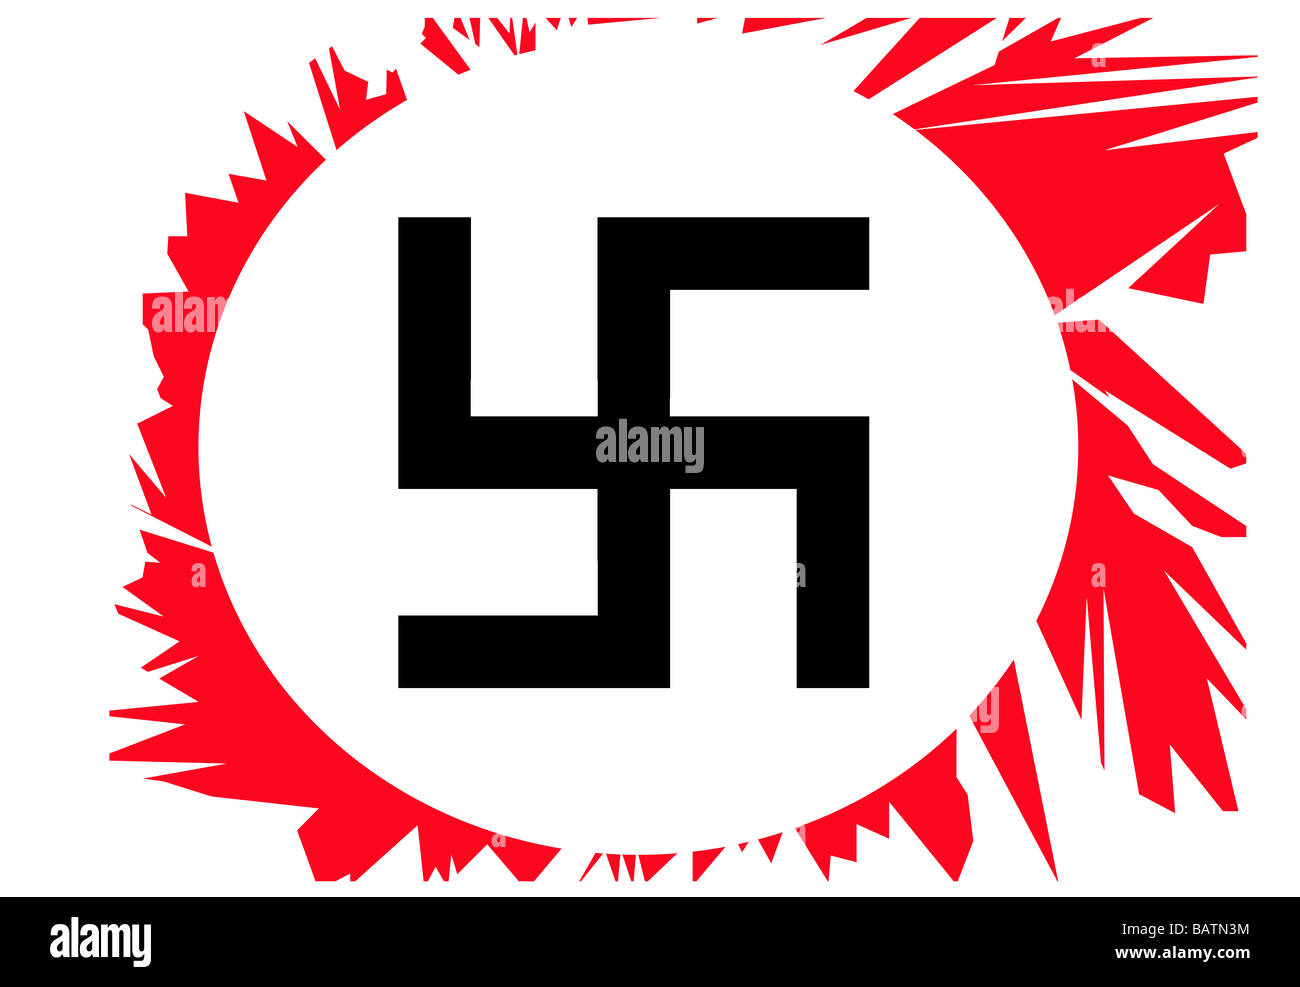 Illustration of black torn Swastika in white circle on red background - Stock Image